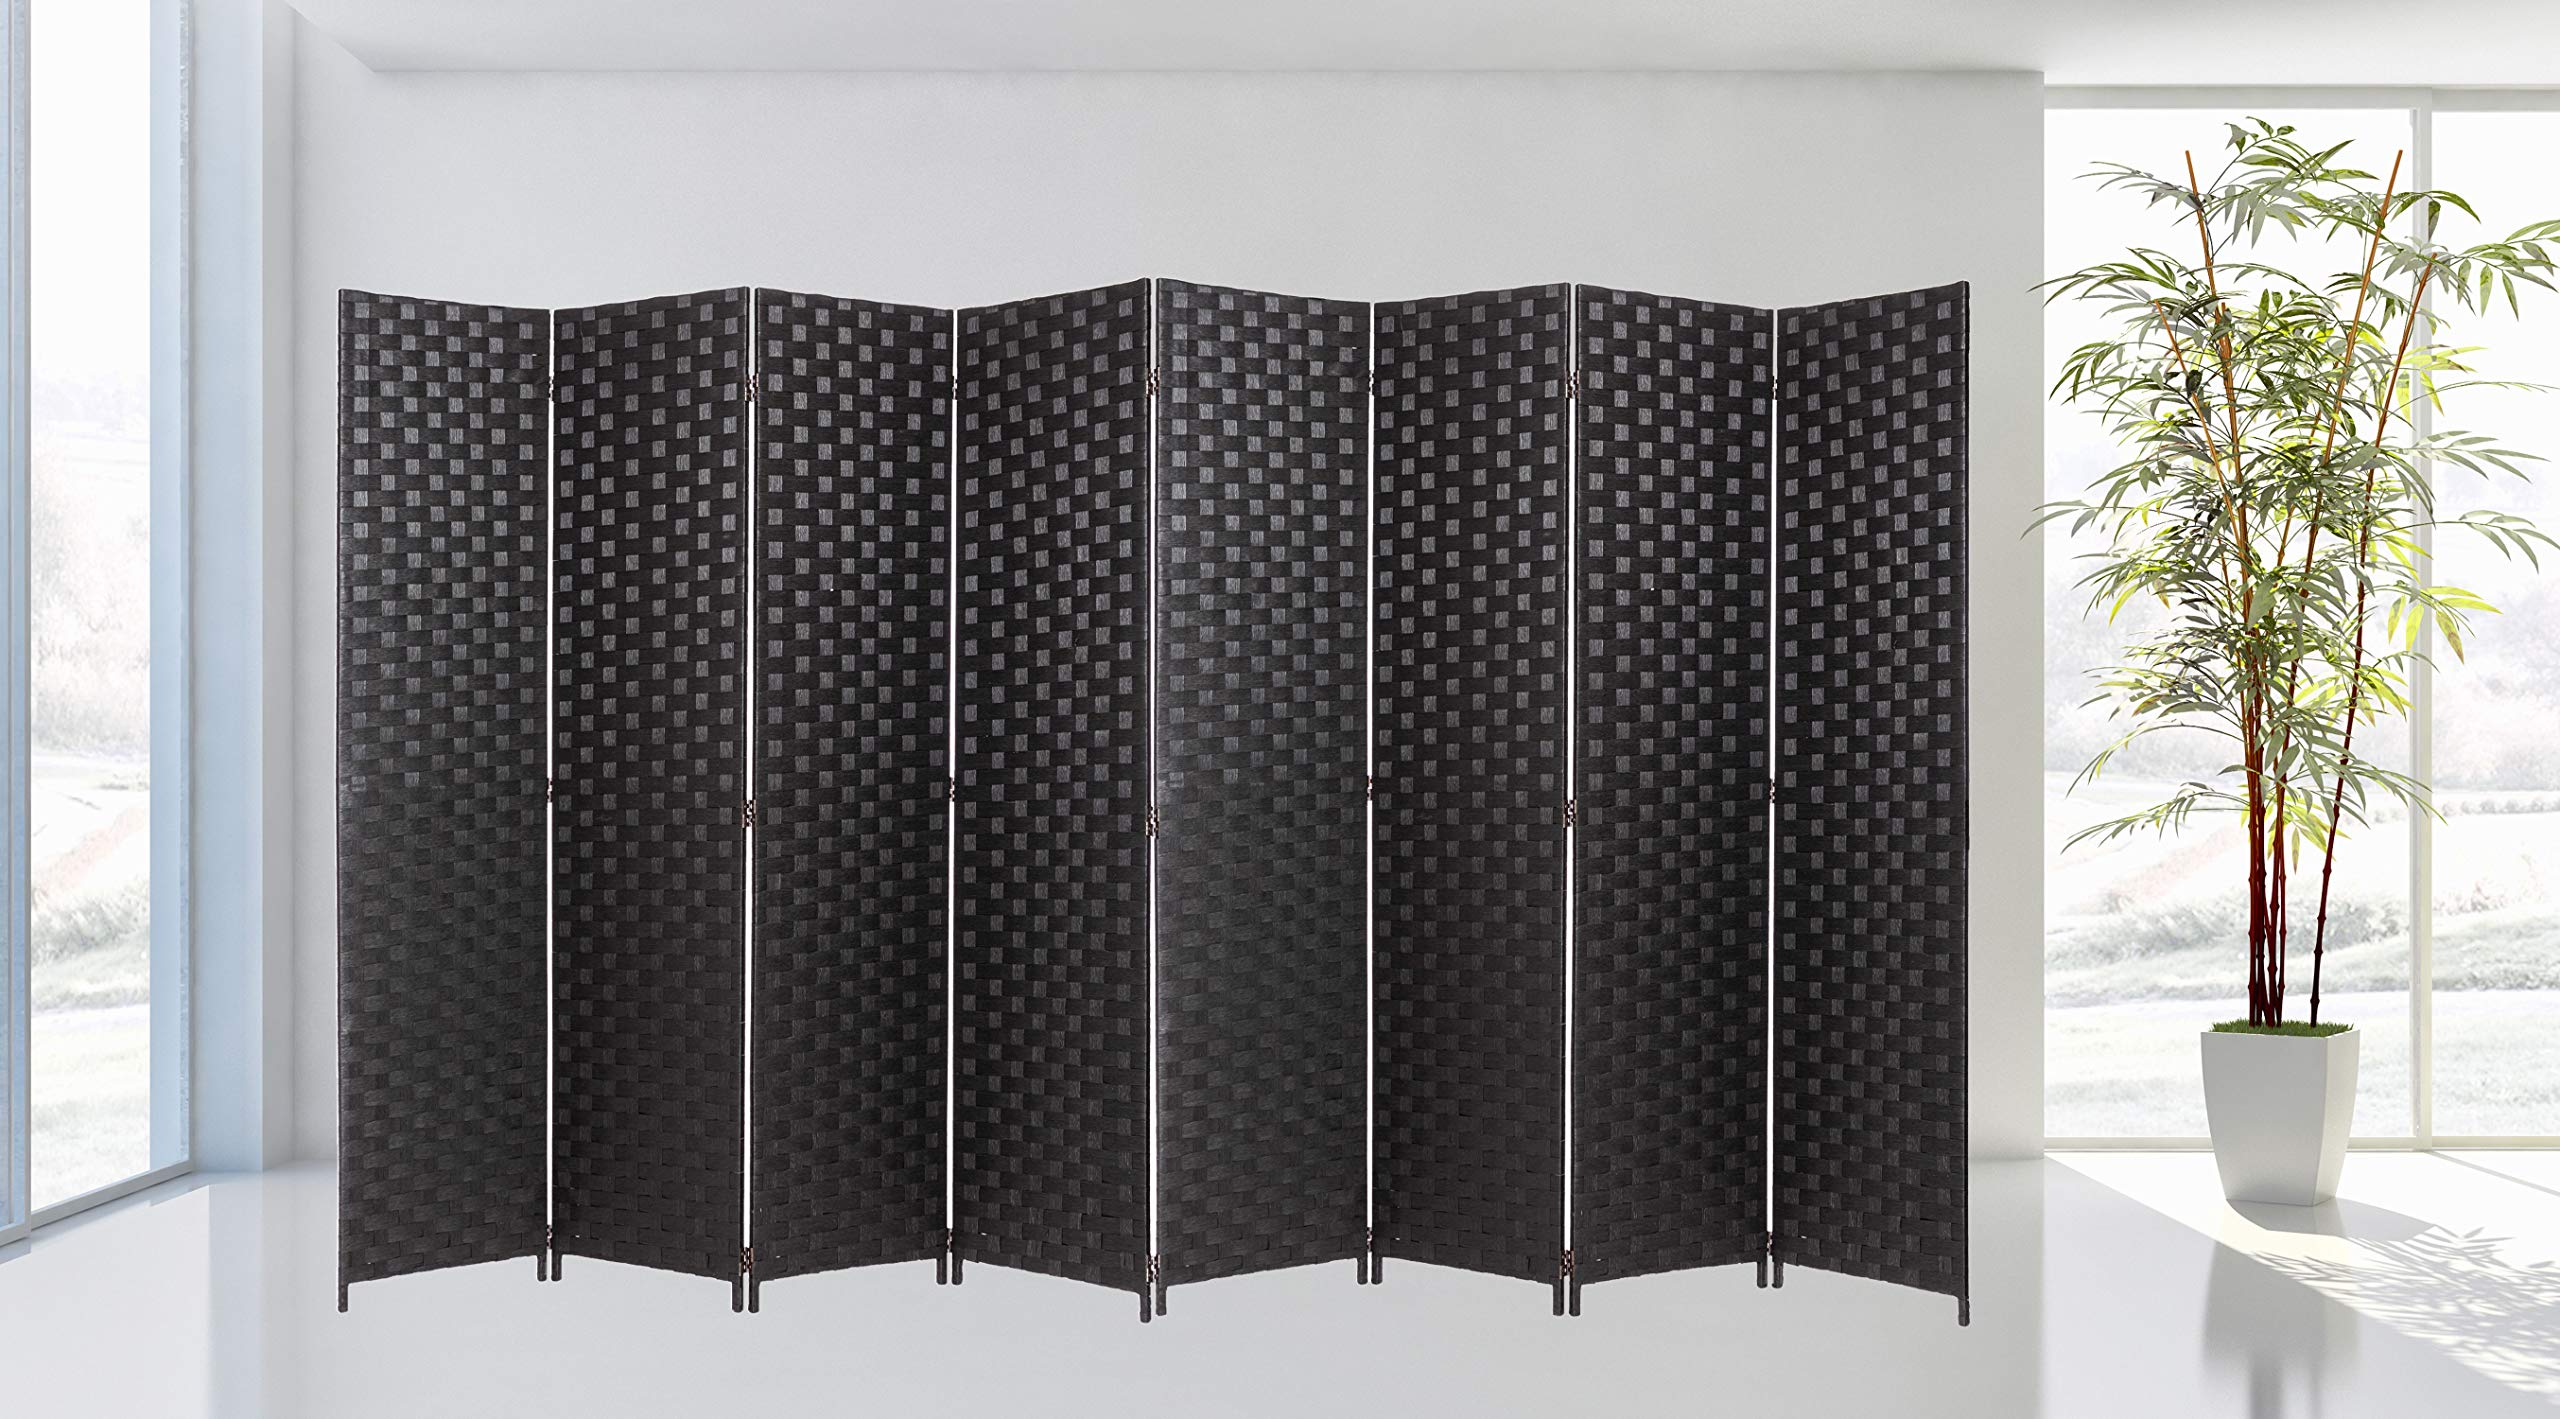 Legacy Decor Room Divider 8 Panel Weave Design Fiber Black Color